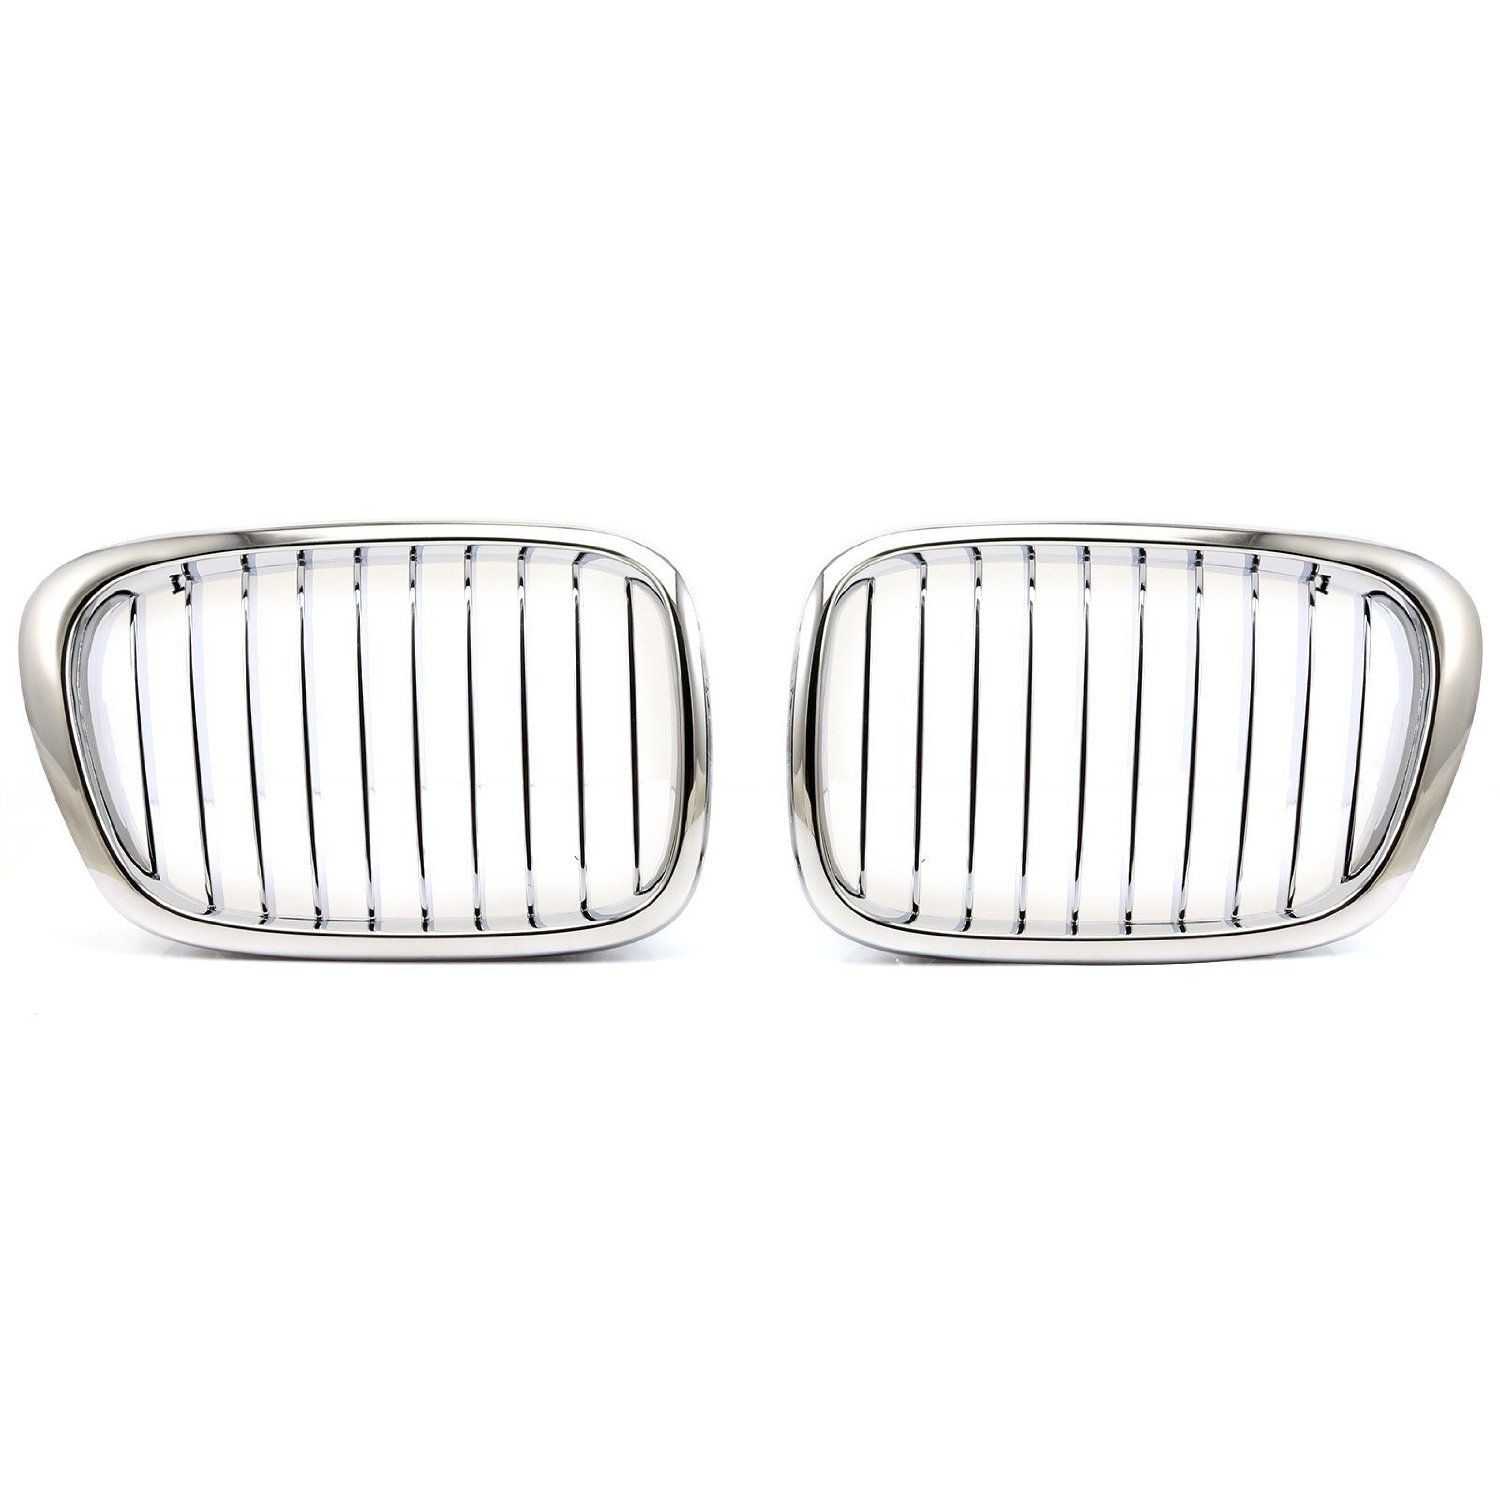 Cheap Bmw E39 Chrome, find Bmw E39 Chrome deals on line at